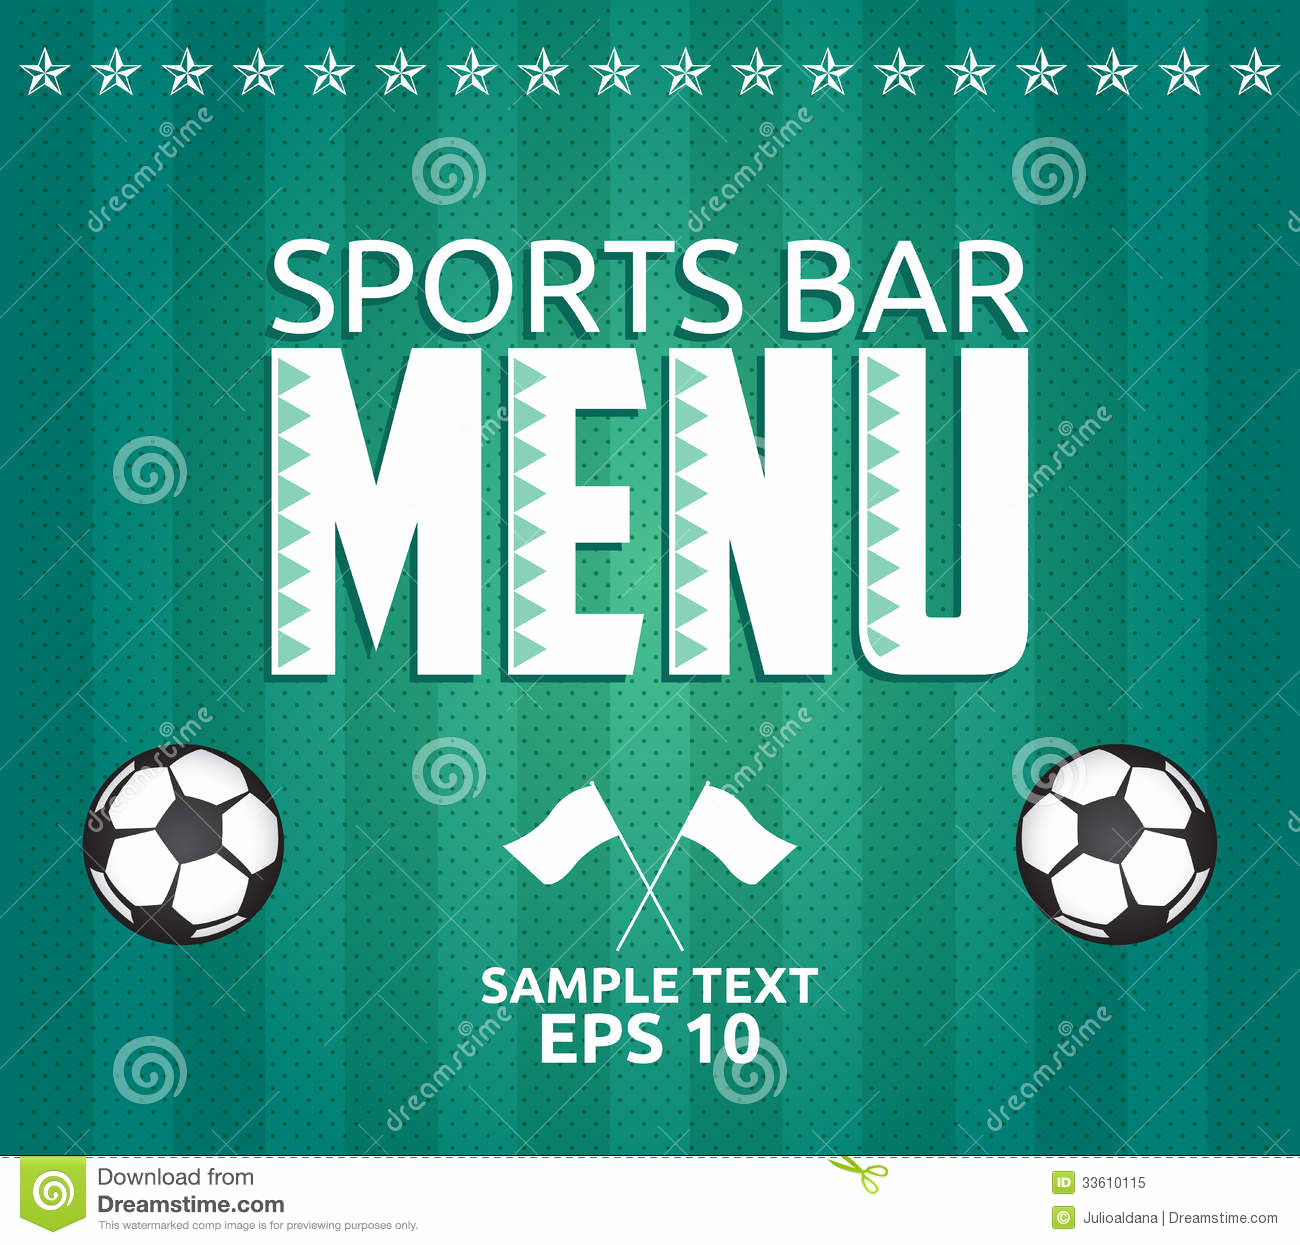 Sports Bar Menu Template Unique Football Sports Bar Menu Card Design Template Royalty